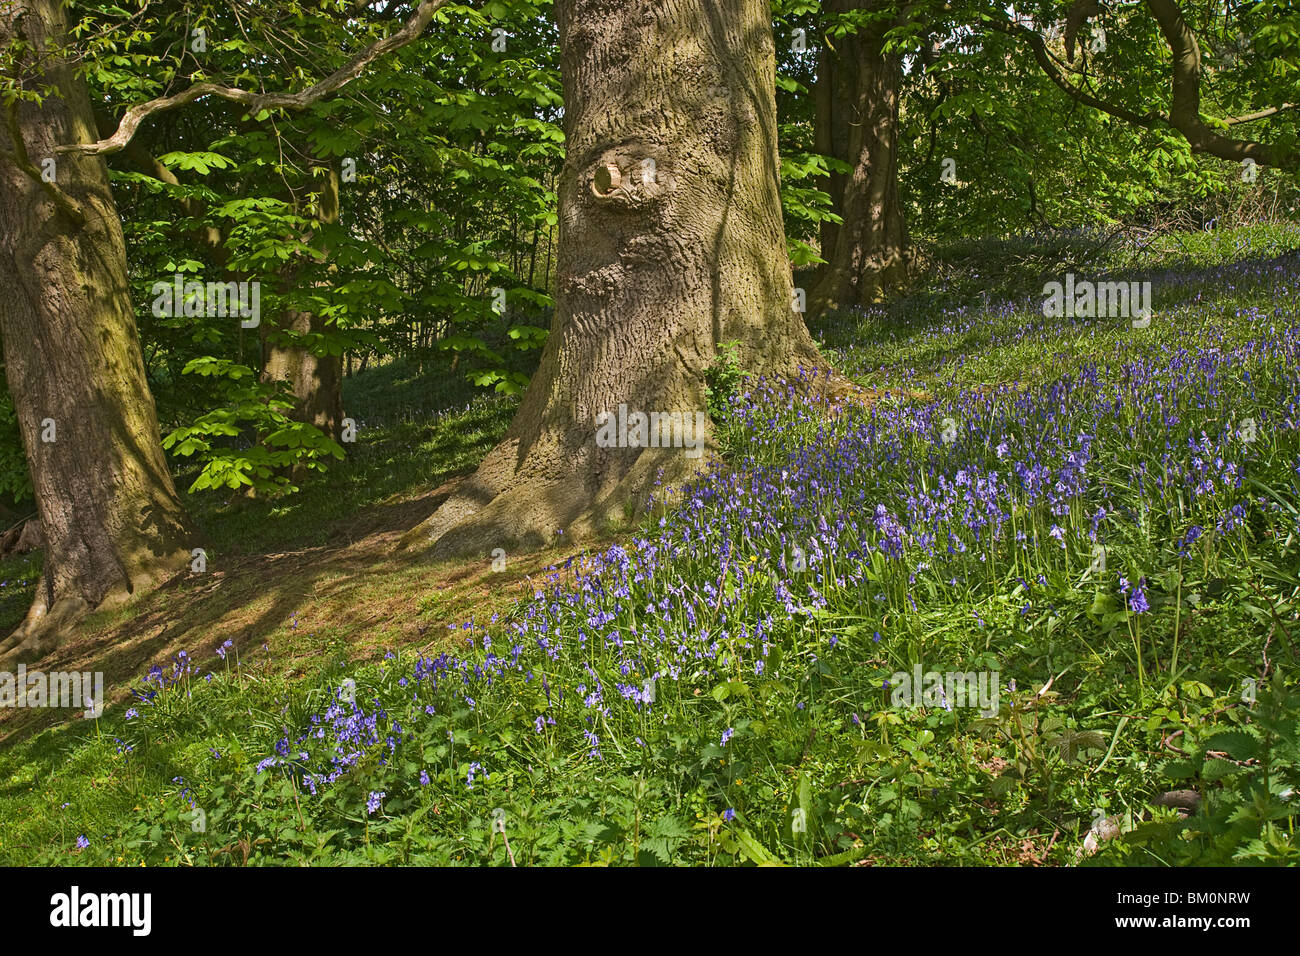 Bluebells in woodland at Easby near Richmond, Yorkshire. - Stock Image